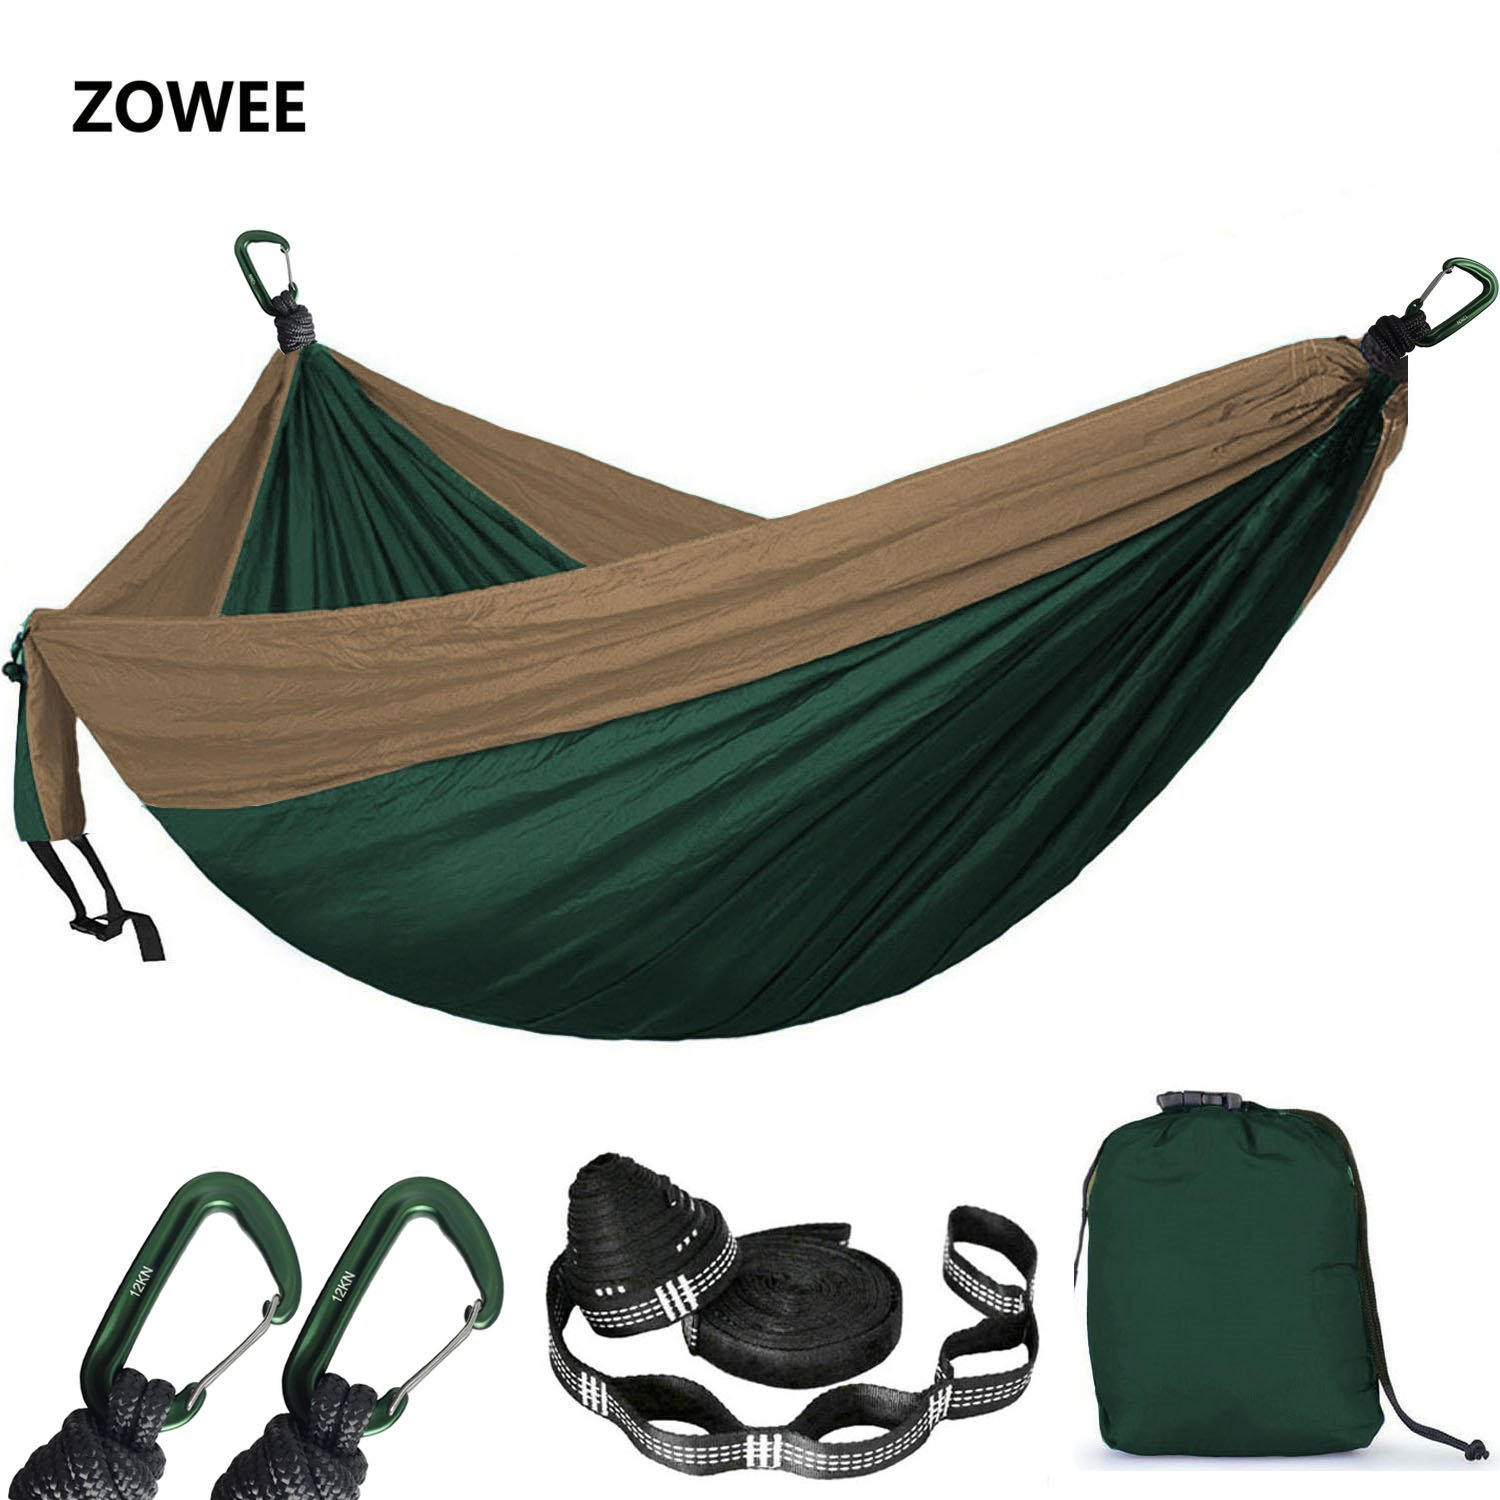 Outdoor Tools Beautiful Practical Super Hammock With Hanging Hammock With Hamaca Hamak Camping Travel Portable Hanging Tree Rope S2 Sports & Entertainment